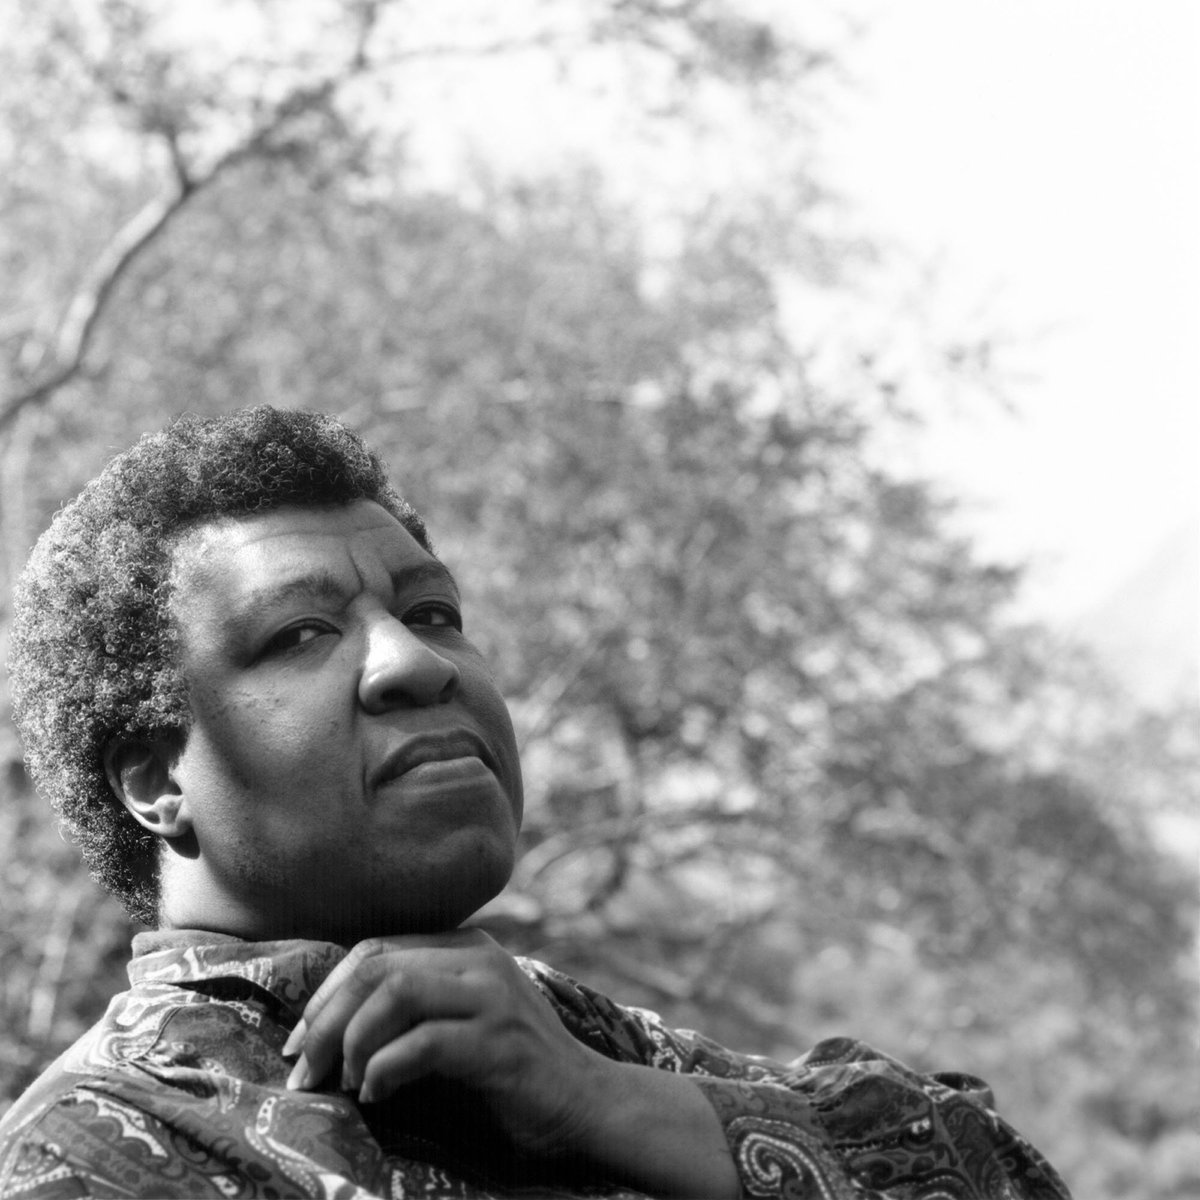 'Choose your leaders with wisdom and forethought. To be led by a coward is to be controlled by all that the coward fears. To be led by a fool is to be led by the opportunists who control the fool. To be led by a liar is to ask to be lied to' Octavia Butler.